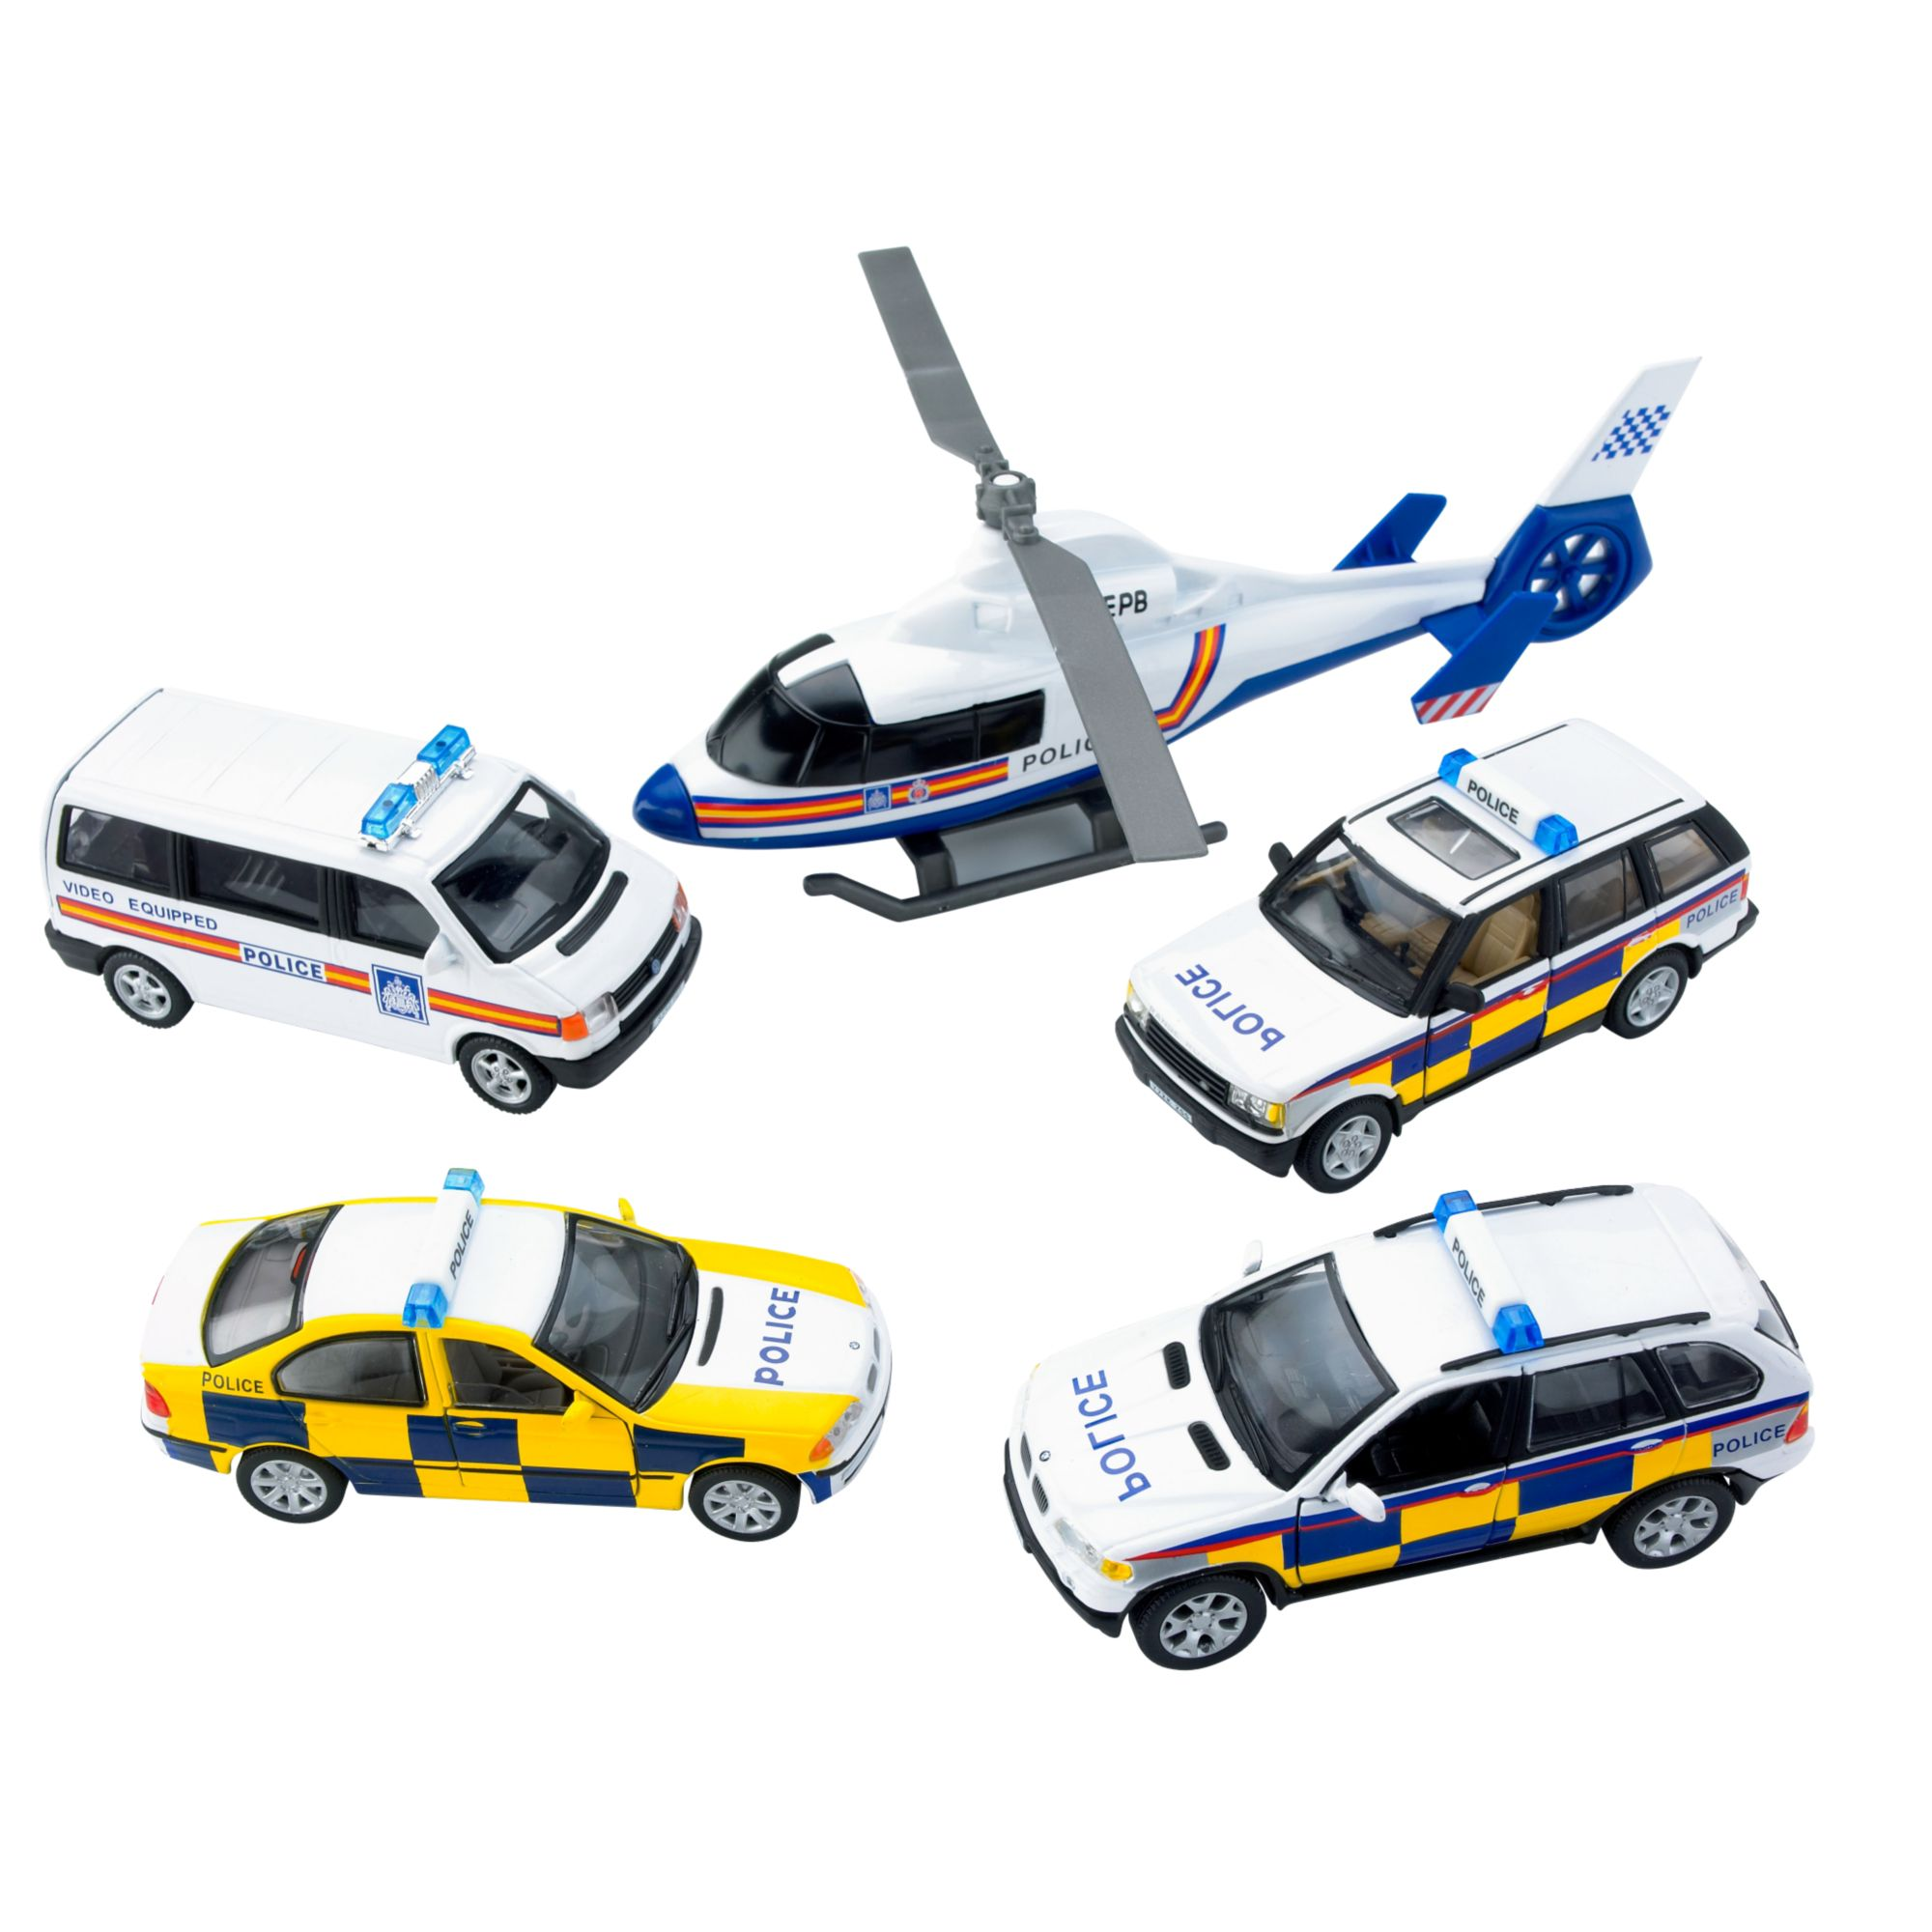 Police vehicle set